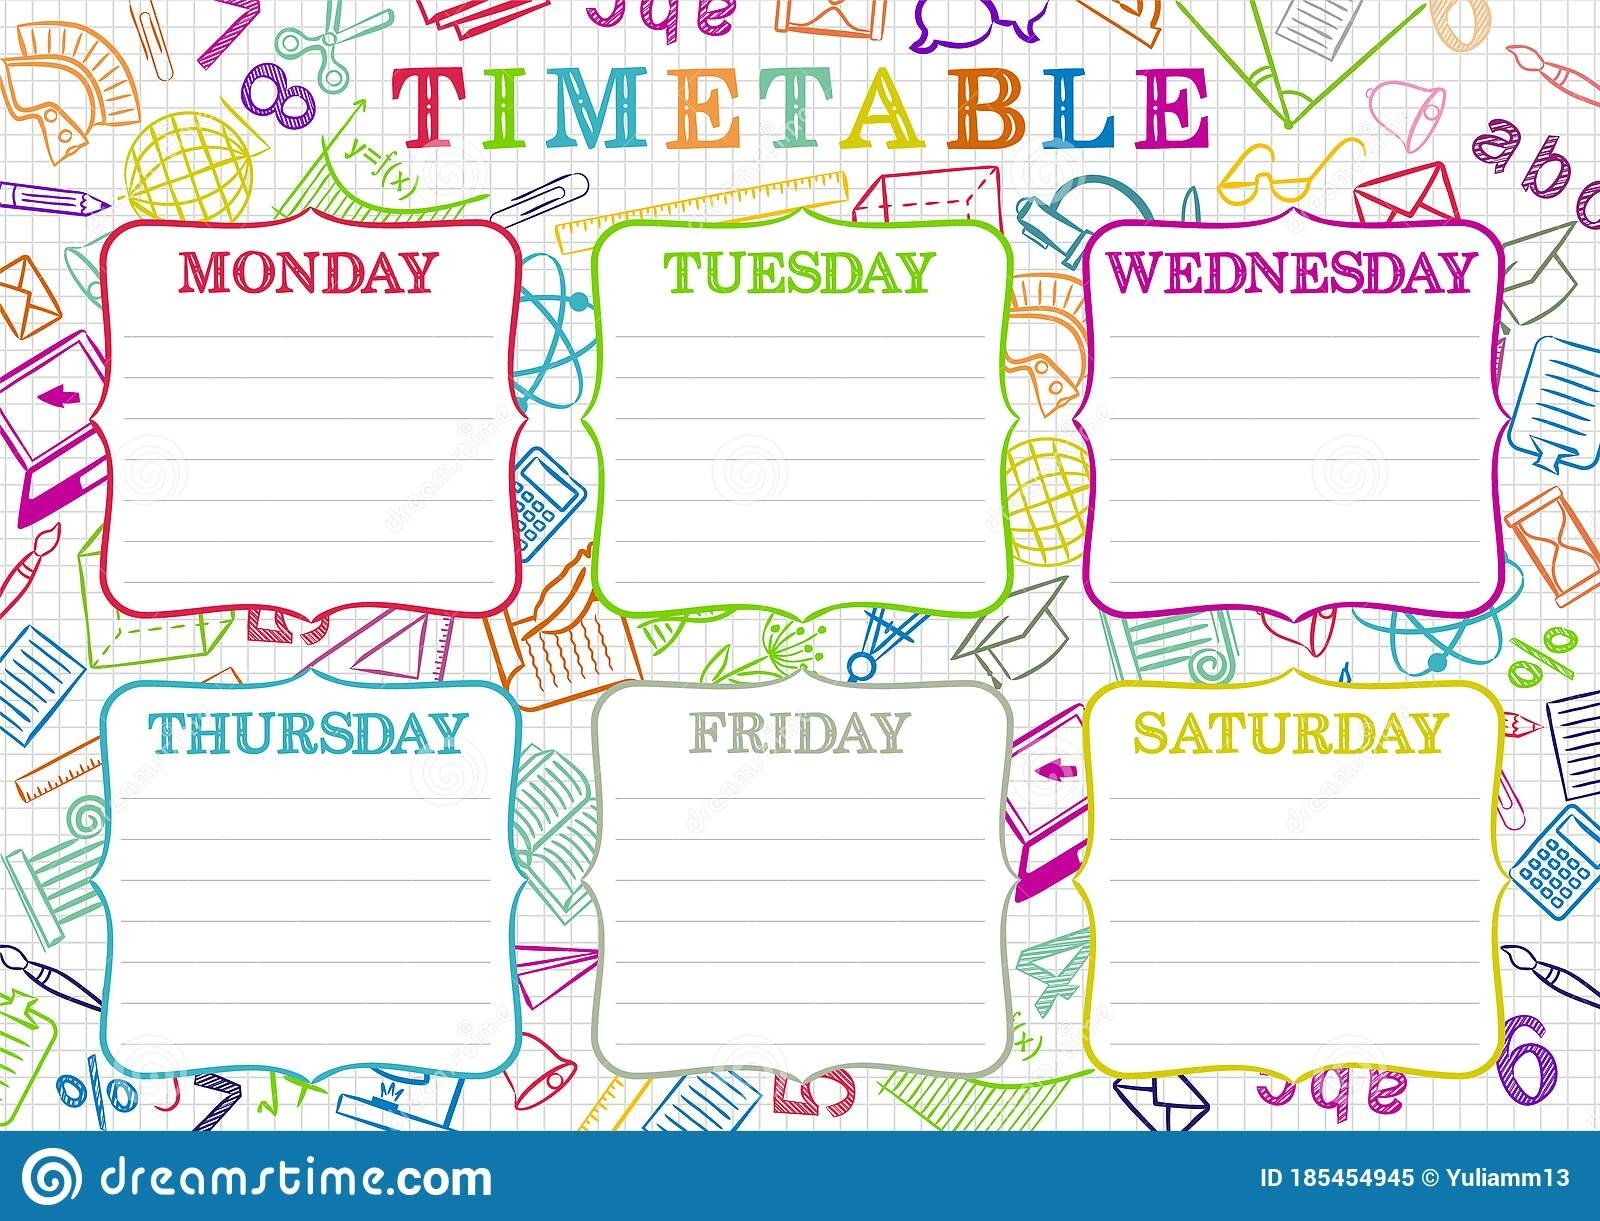 Template Of A School Schedule For 6 Days Of The Week For